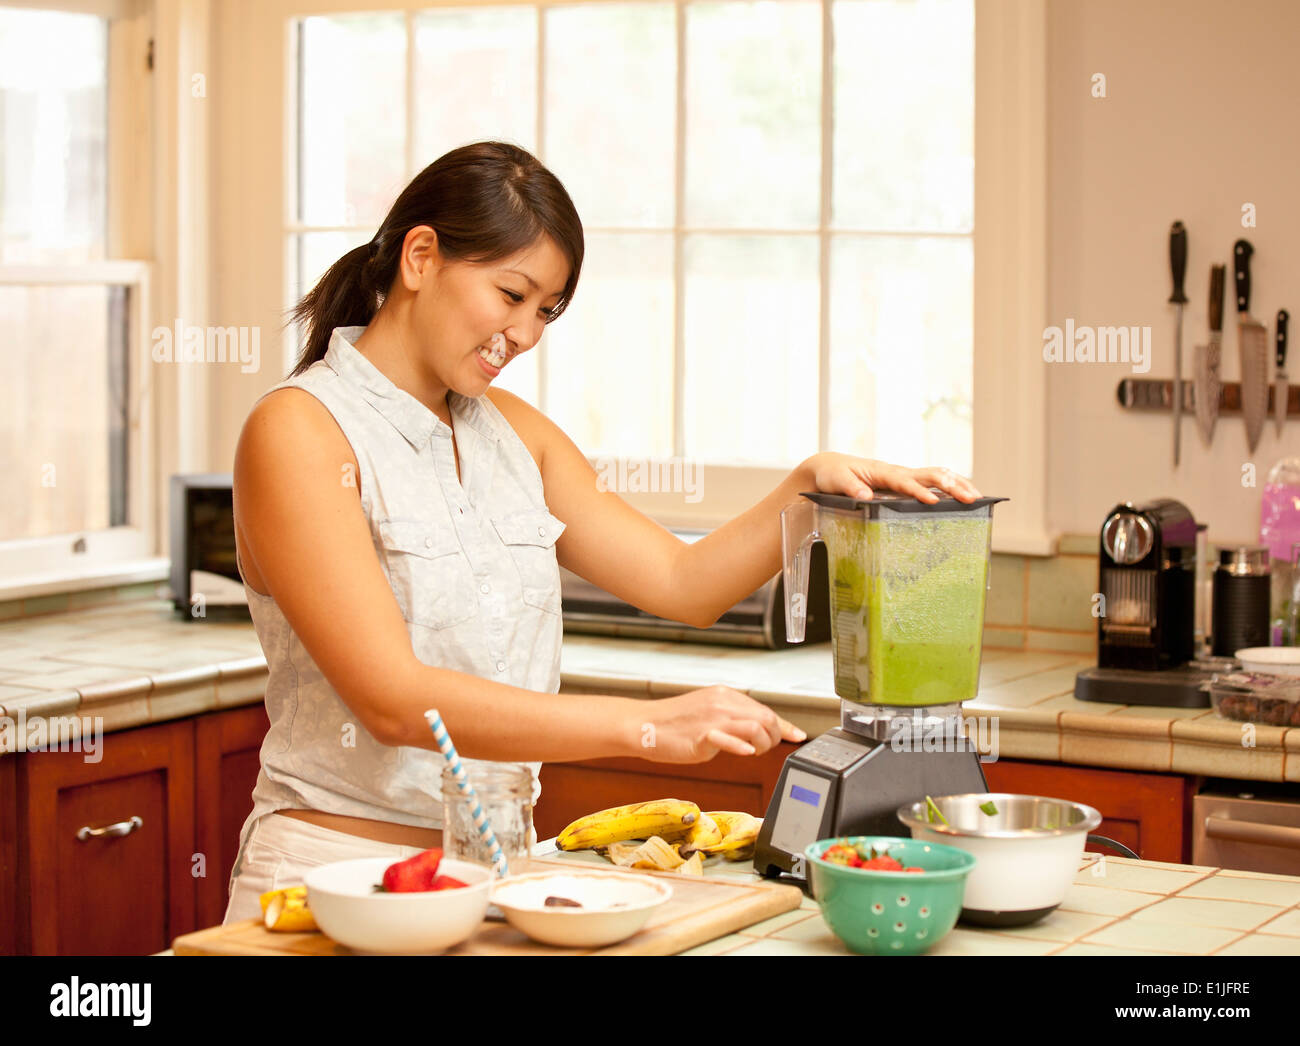 Young woman making green smoothie in kitchen - Stock Image